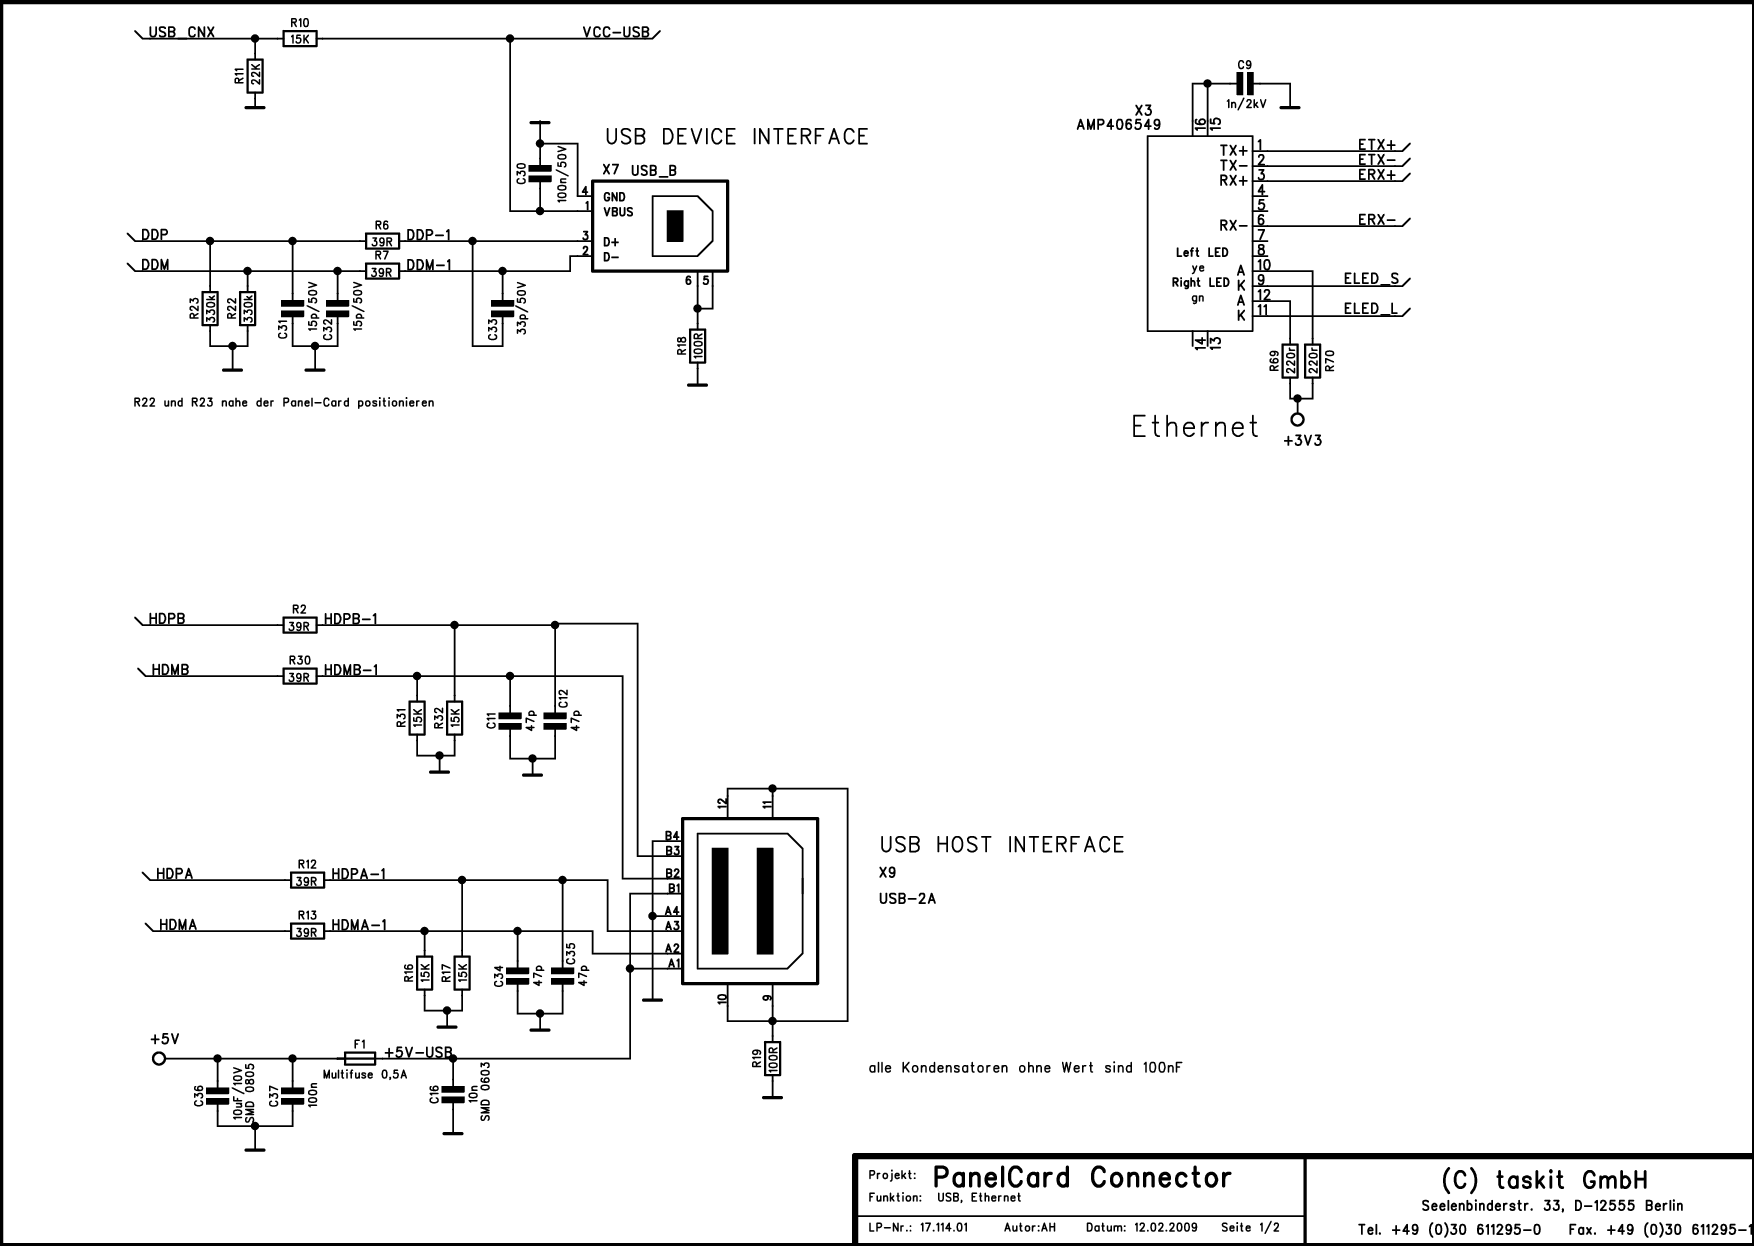 PaCaConnector 0 usb type b wiring diagram usb wiring diagrams collection  at edmiracle.co